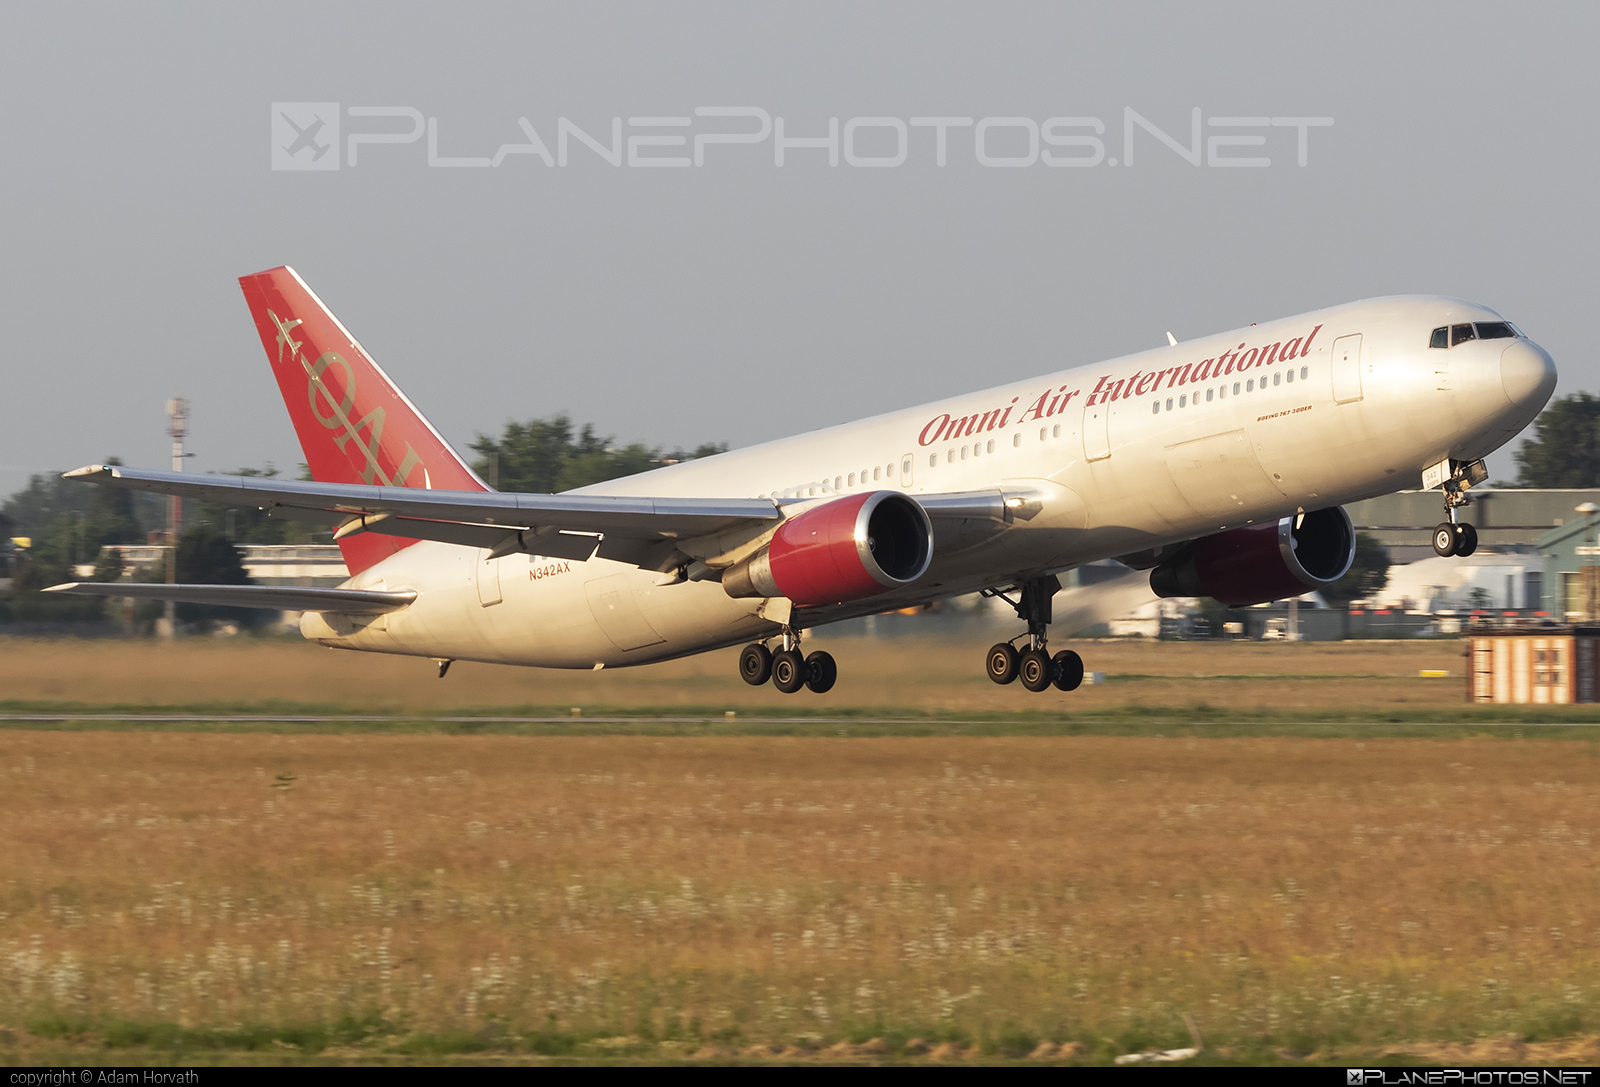 Boeing 767-300ER - N342AX operated by Omni Air International (OAI) #b767 #b767er #boeing #boeing767